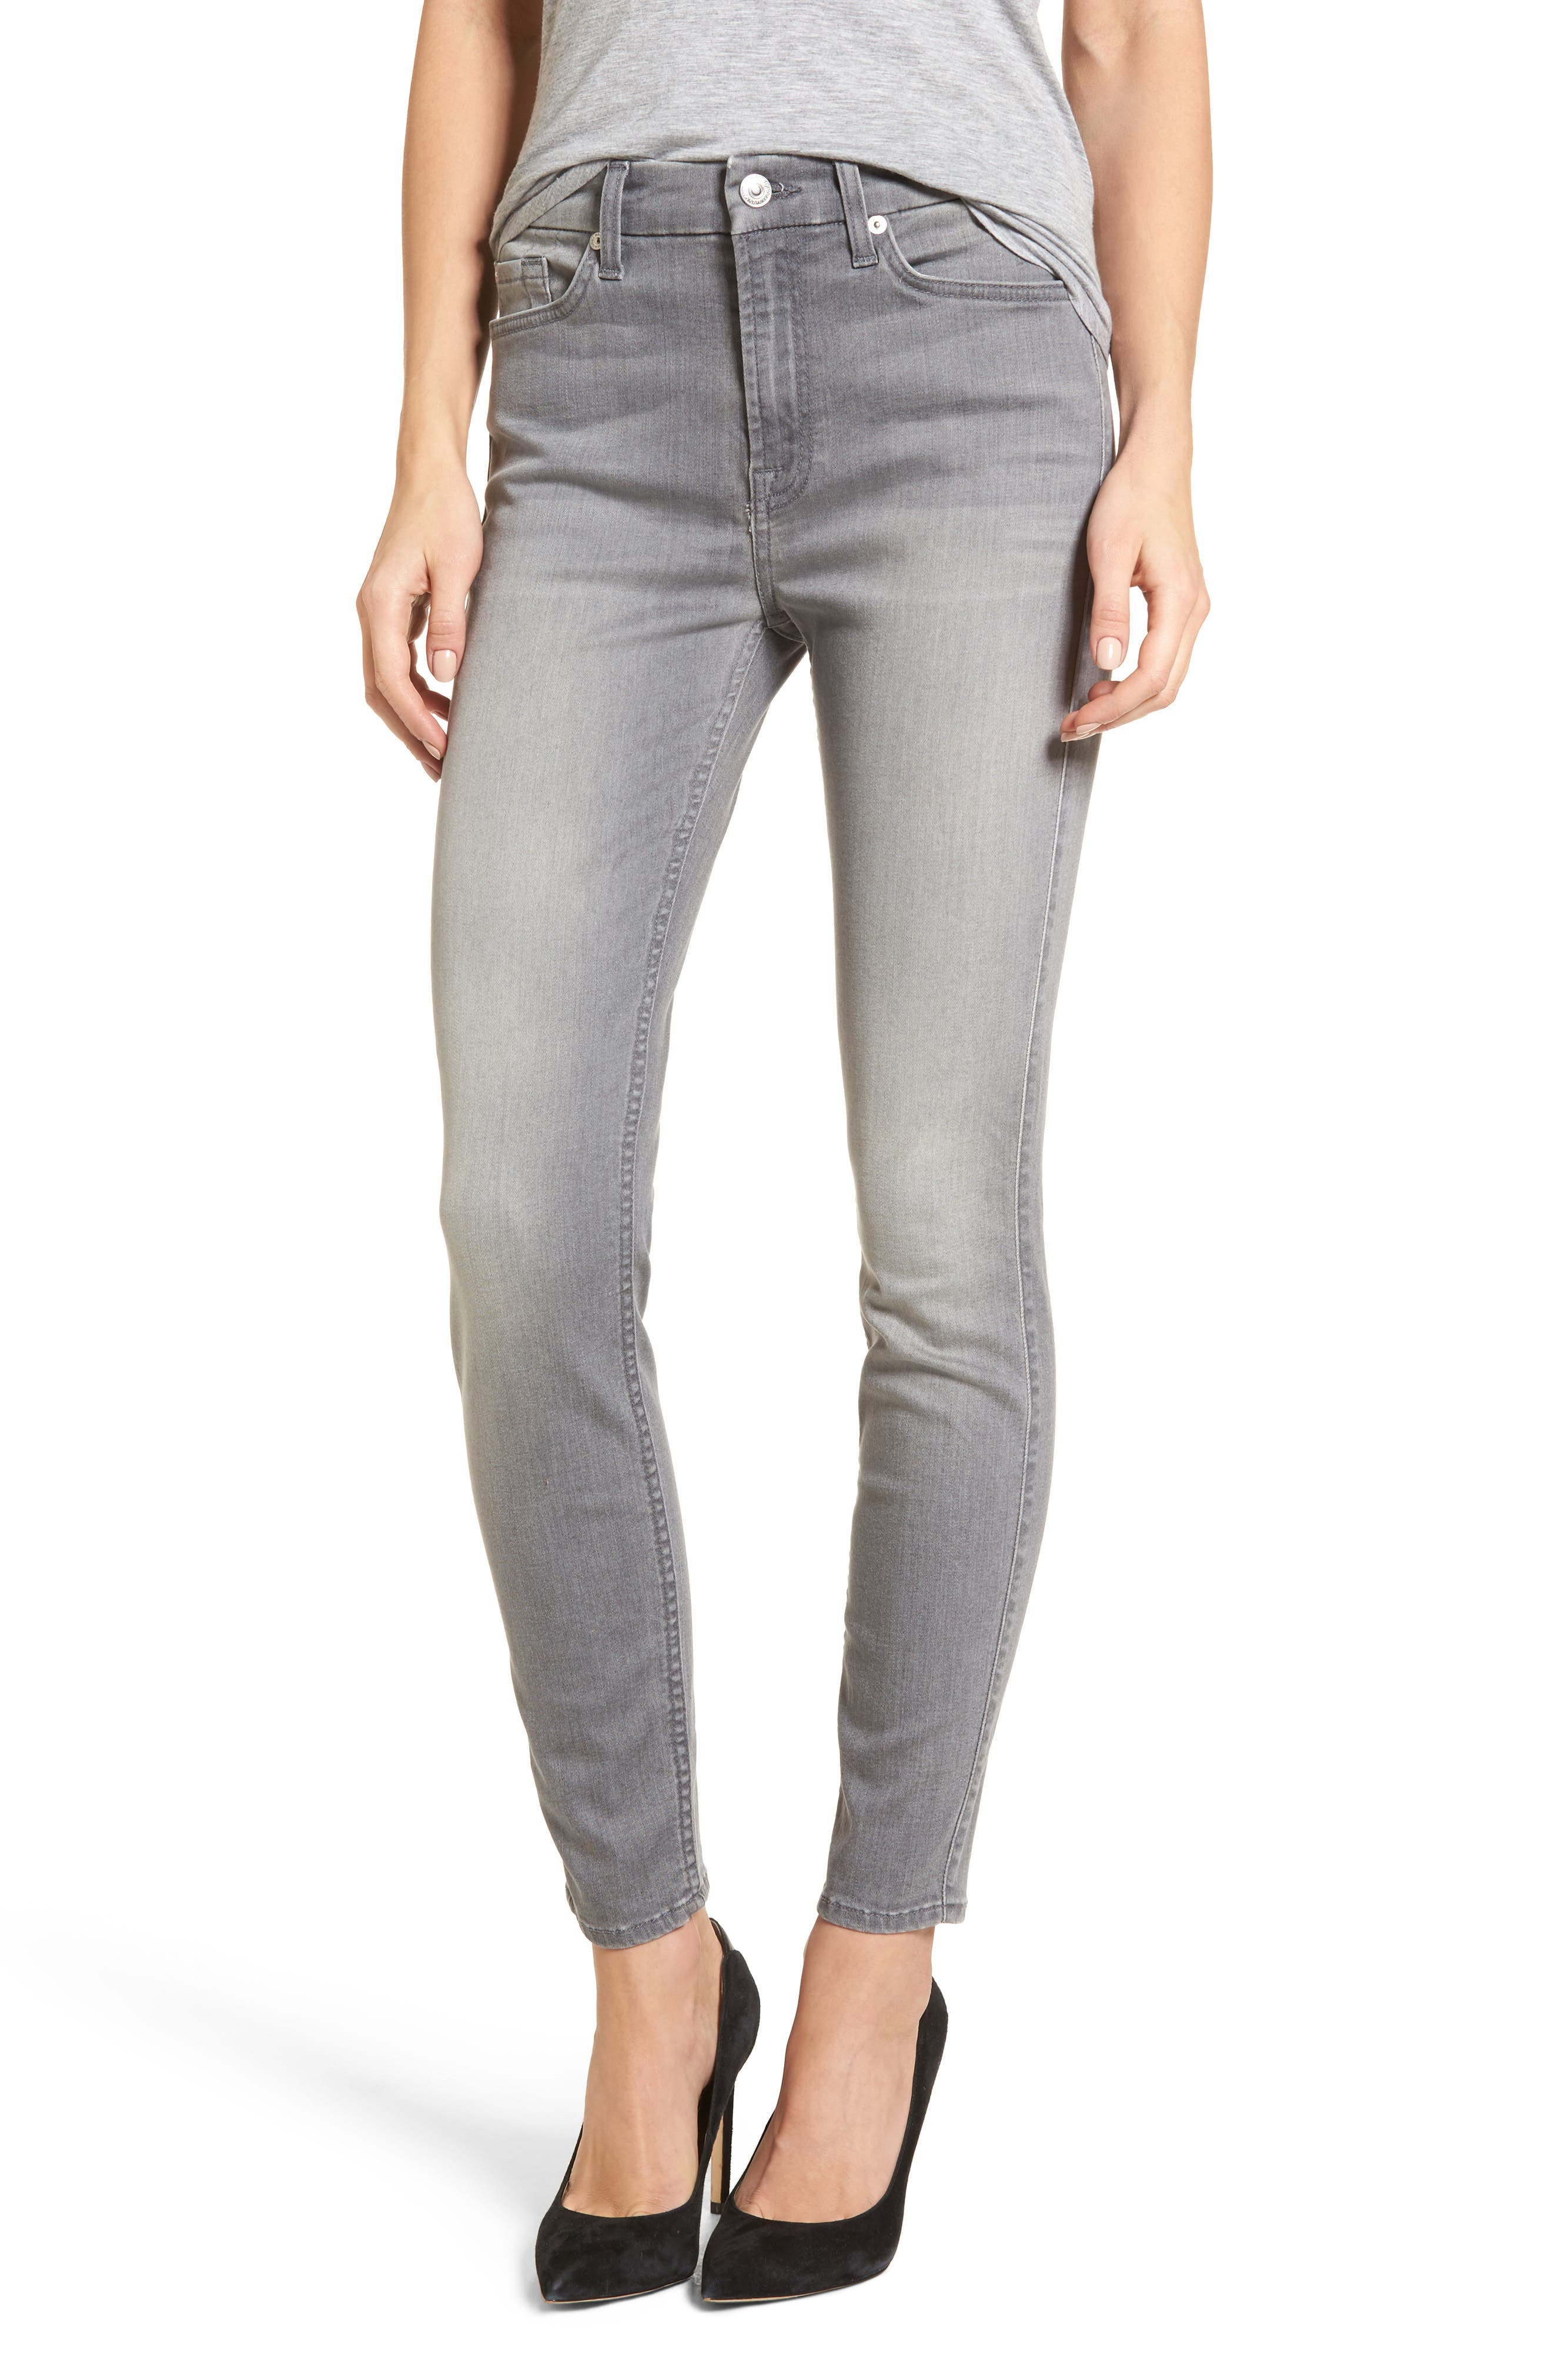 Alternate Image 1 Selected - 7 For All Mankind® High Waist Ankle Skinny Jeans (Chrysler Grey)